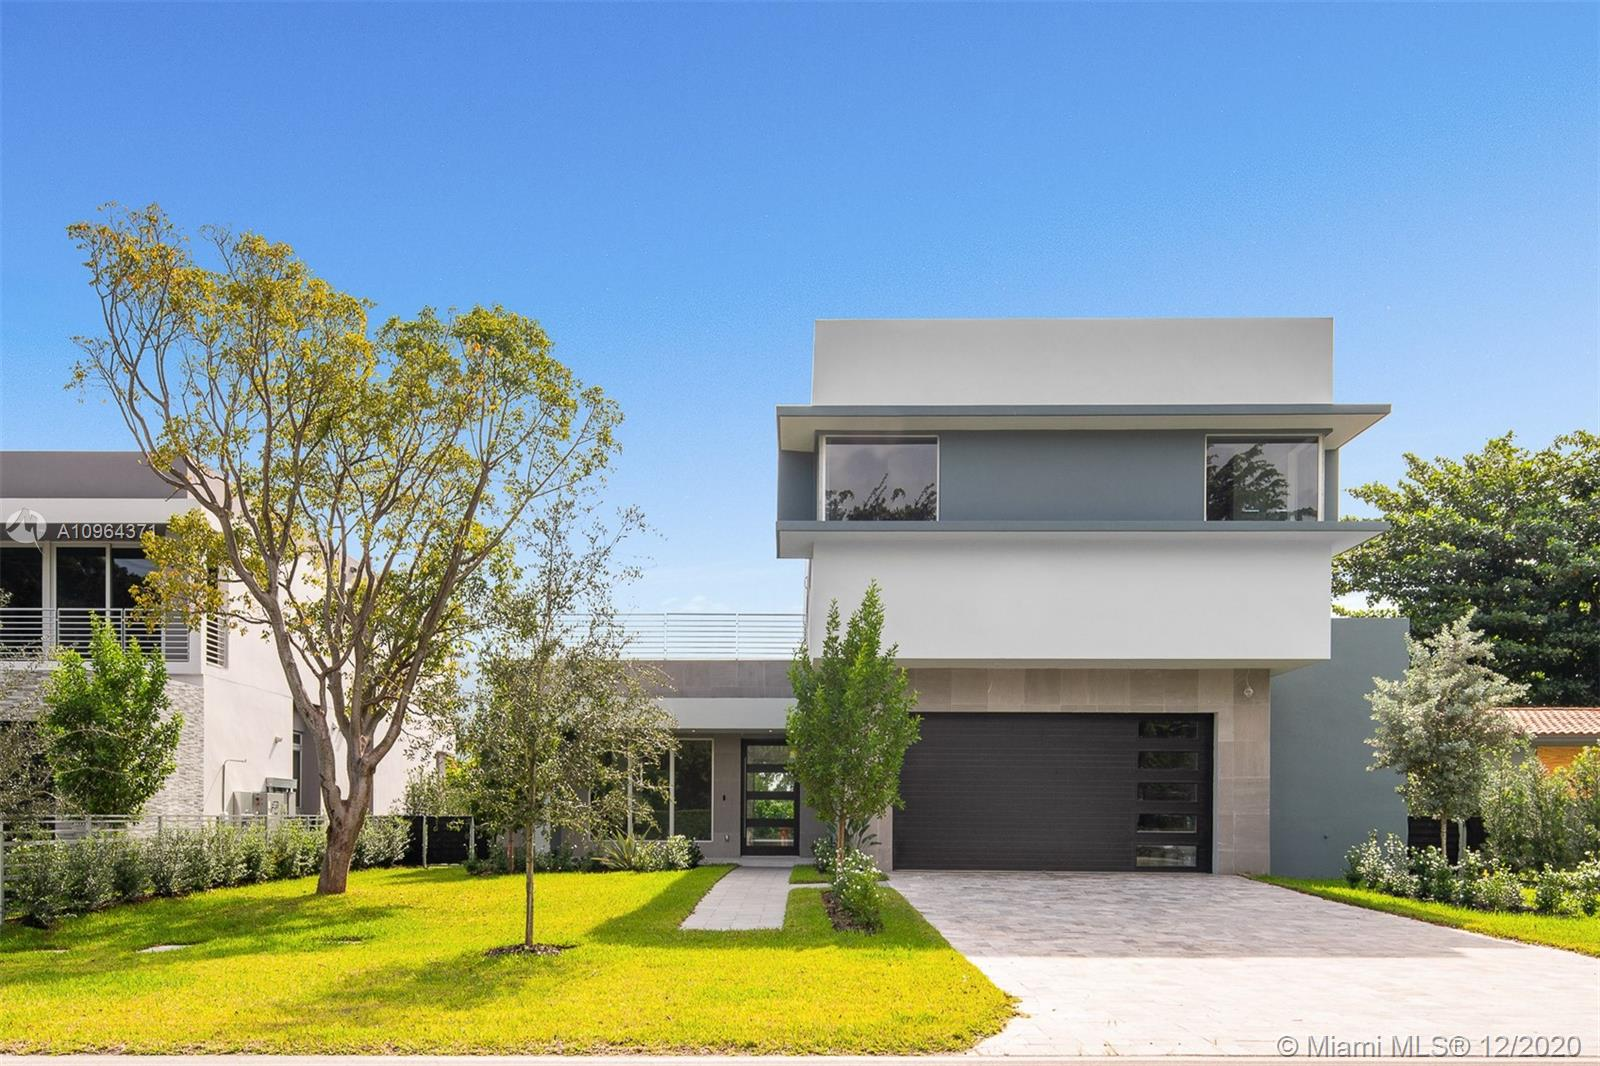 Exceptional 5,244 square foot, 2-story 4 bed/6 bath modern residence, with outdoor patio and pool. Situated in the highly desirable area of Ponce Davis, the home includes an expansive living area, den, and elegant kitchen with Italkraft built-ins and Wolf and Sub-Zero appliances.